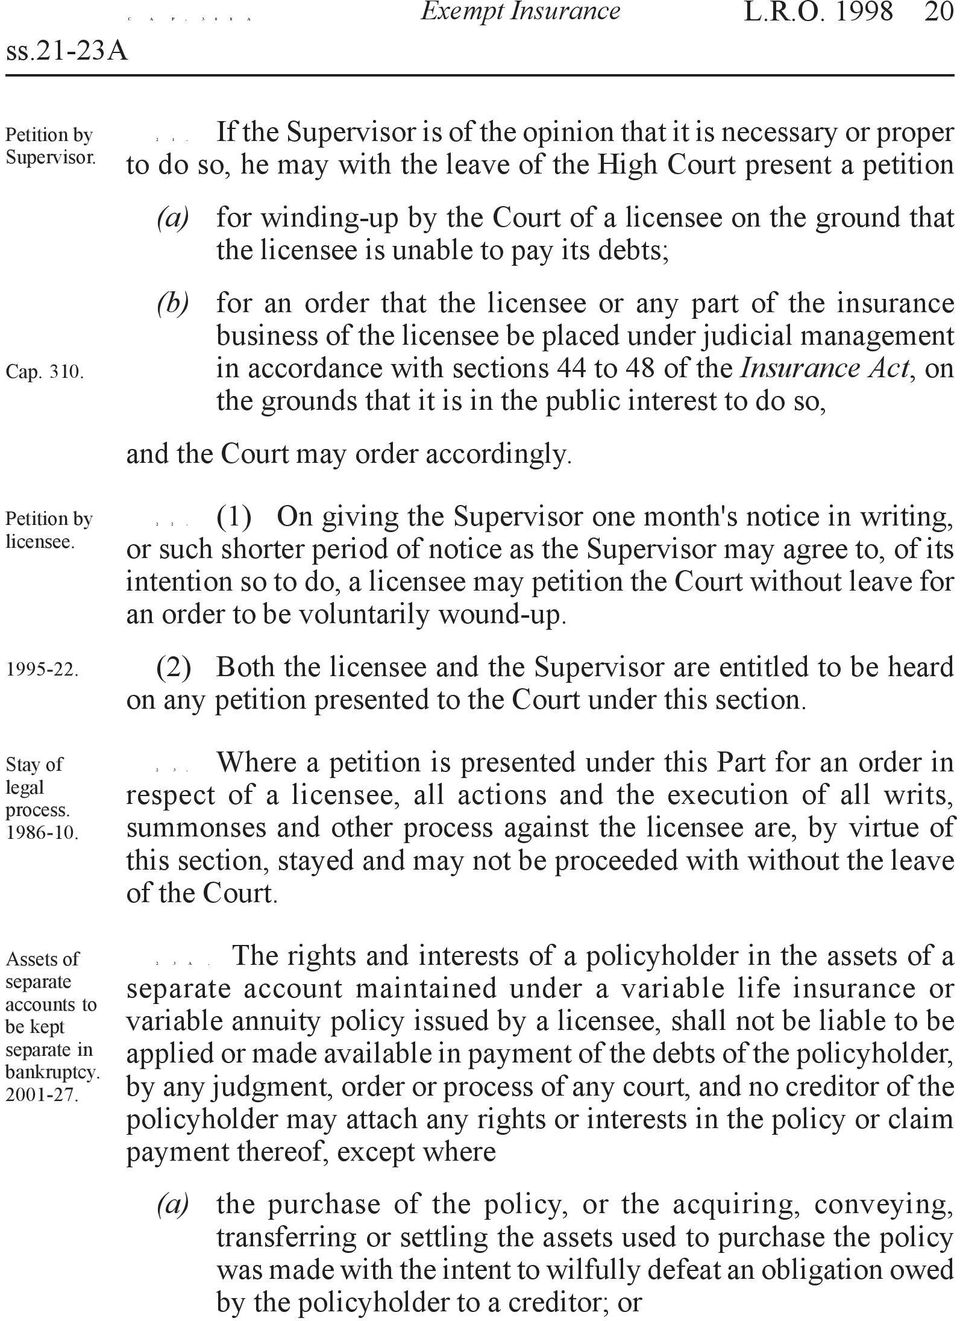 If the Supervisor is of the opinion that it is necessary or proper to do so, he may with the leave of the High Court present a petition for winding-up by the Court of a licensee on the ground that